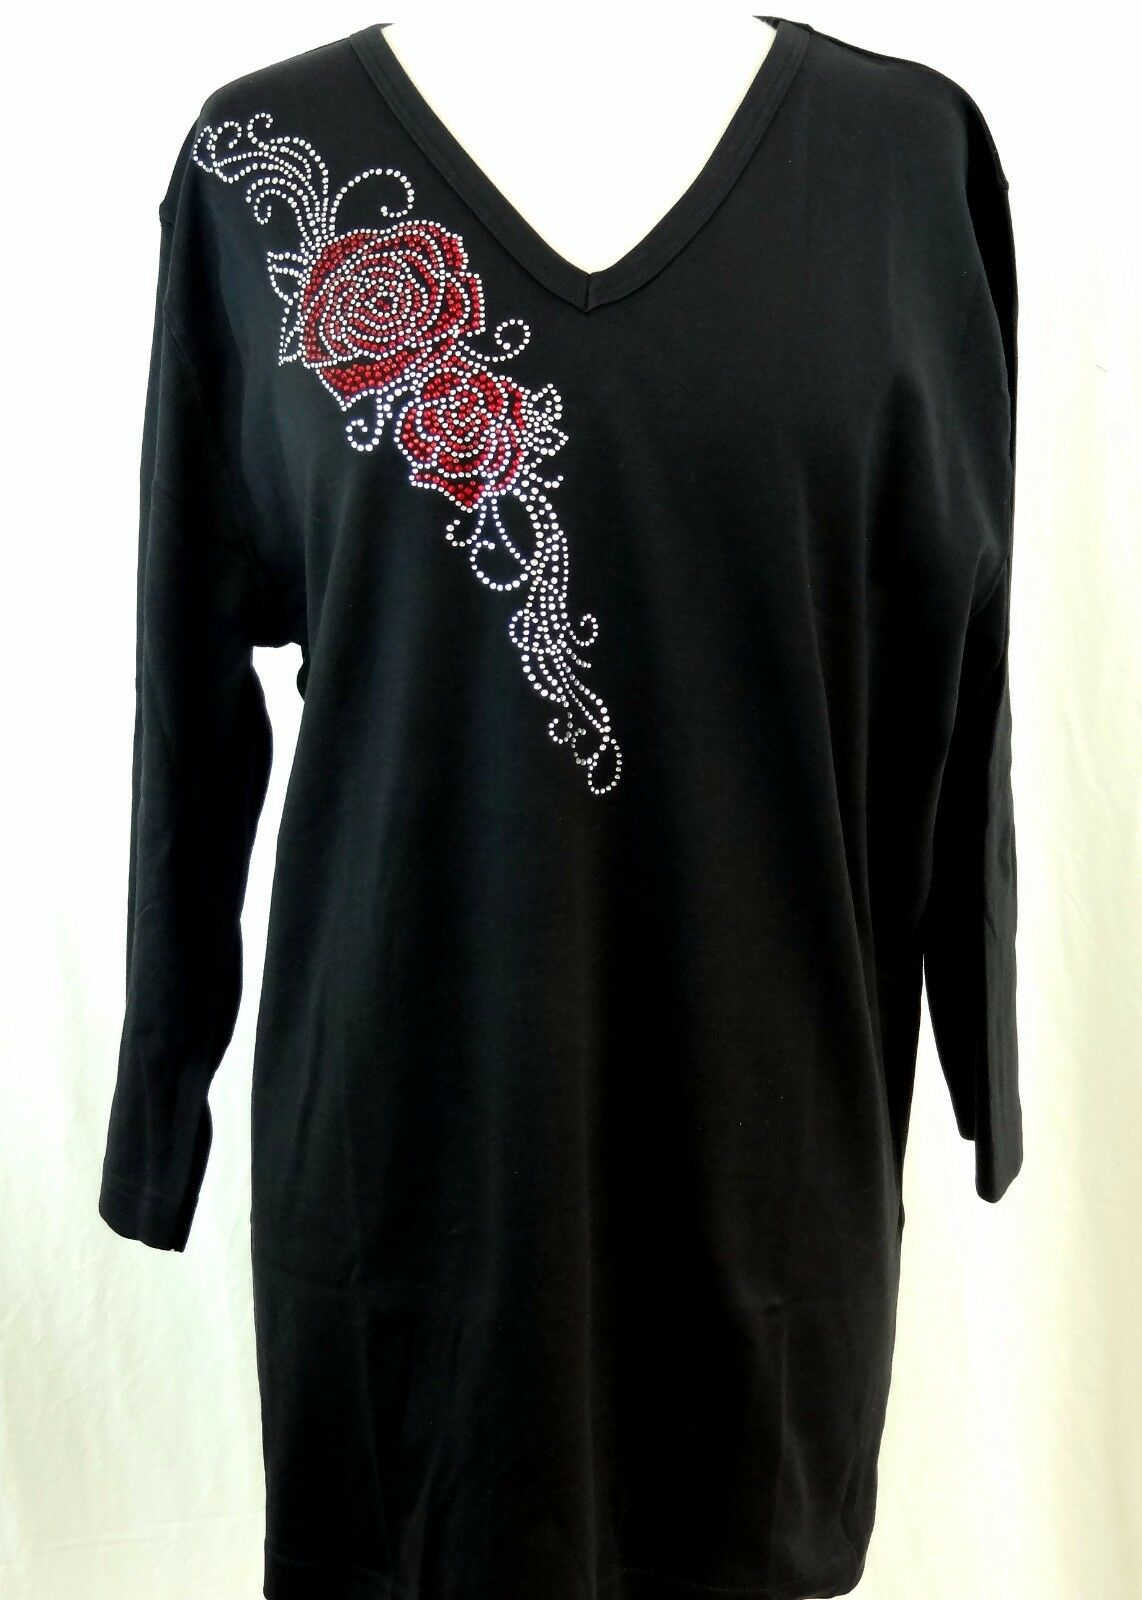 PLUS SIZE 2X Hand Embellished Rhinestone Trailing Red & Crystal pinks Top Shirt